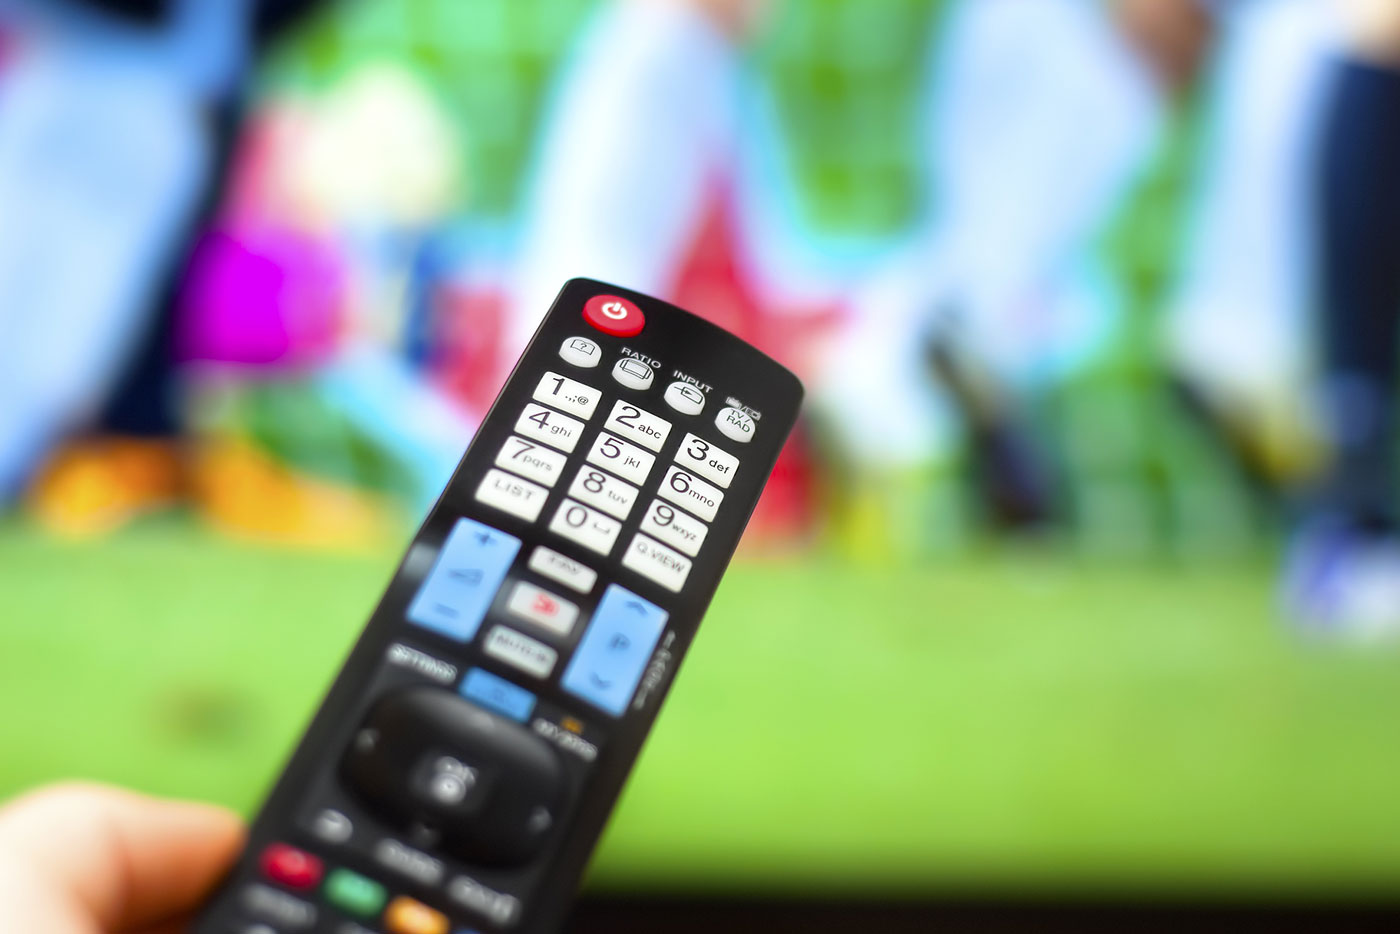 TV remote being used to watch sport